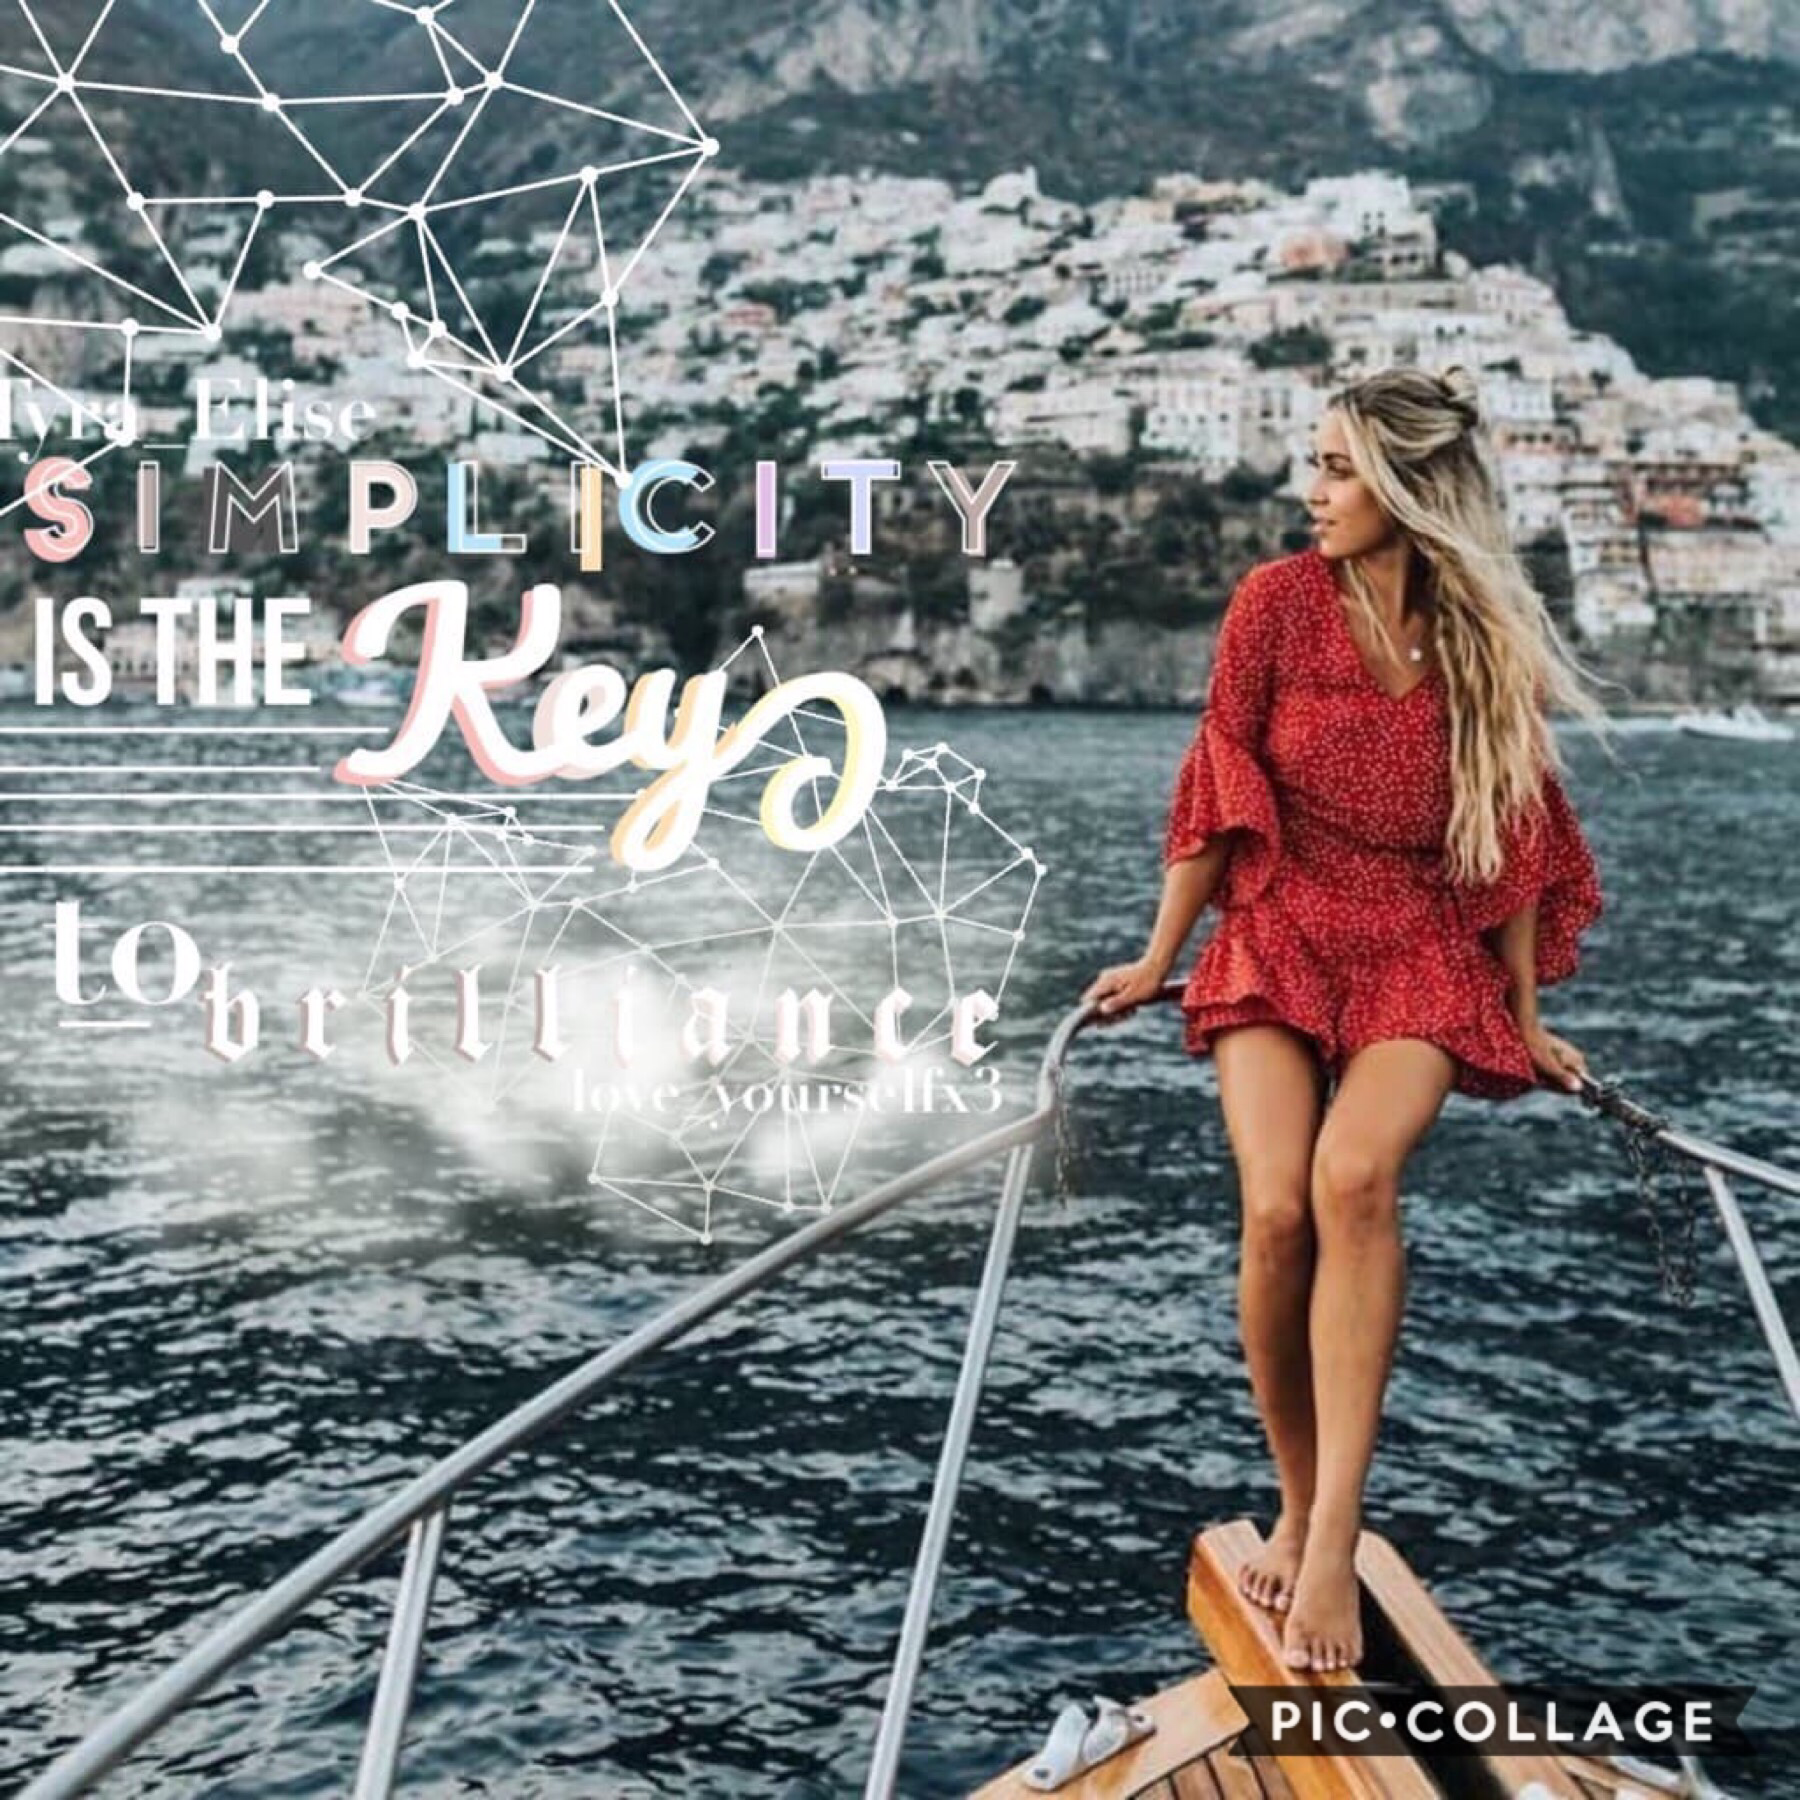 Collab with (tap) The amazing love_yourselfx3! Go check out her account because her collages are amazing! 💖. Also, starting to be inactive because of school 😭. QOTD: What grade are you in? AOTD: 7th 💞